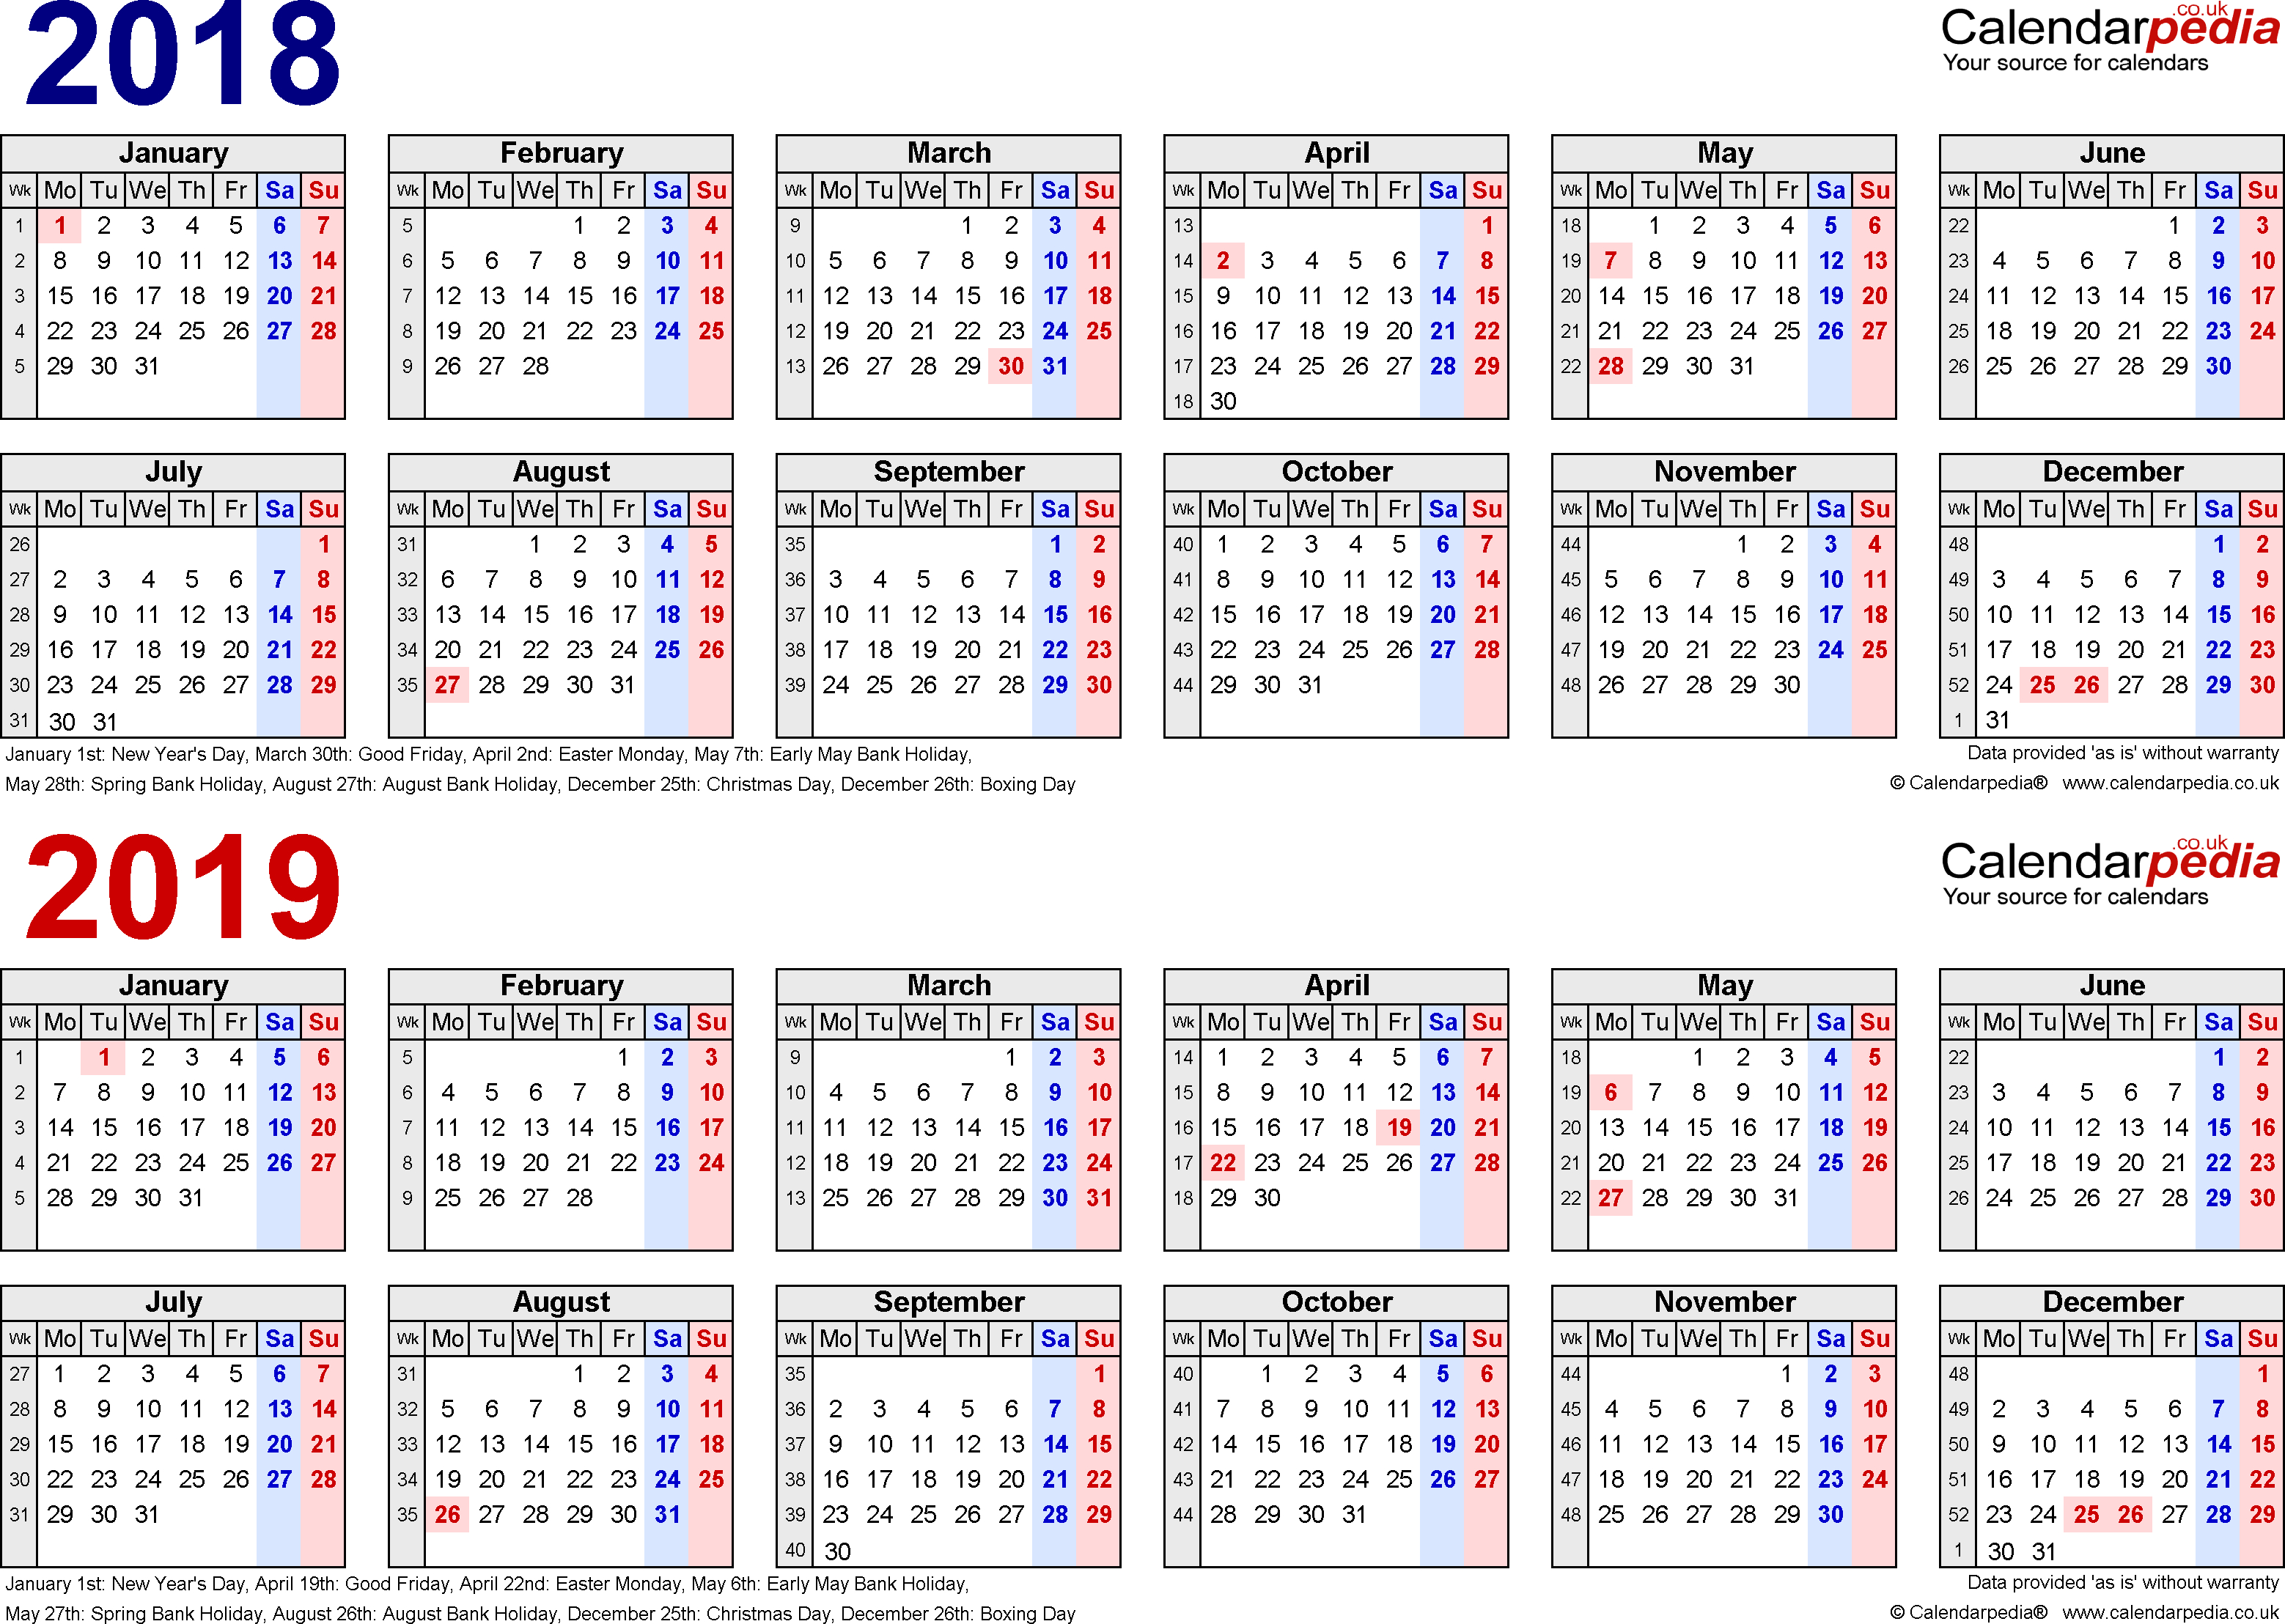 Two Year Calendars For 2018 & 2019 (Uk) For Excel Calendar 2019 Excel Pakistan